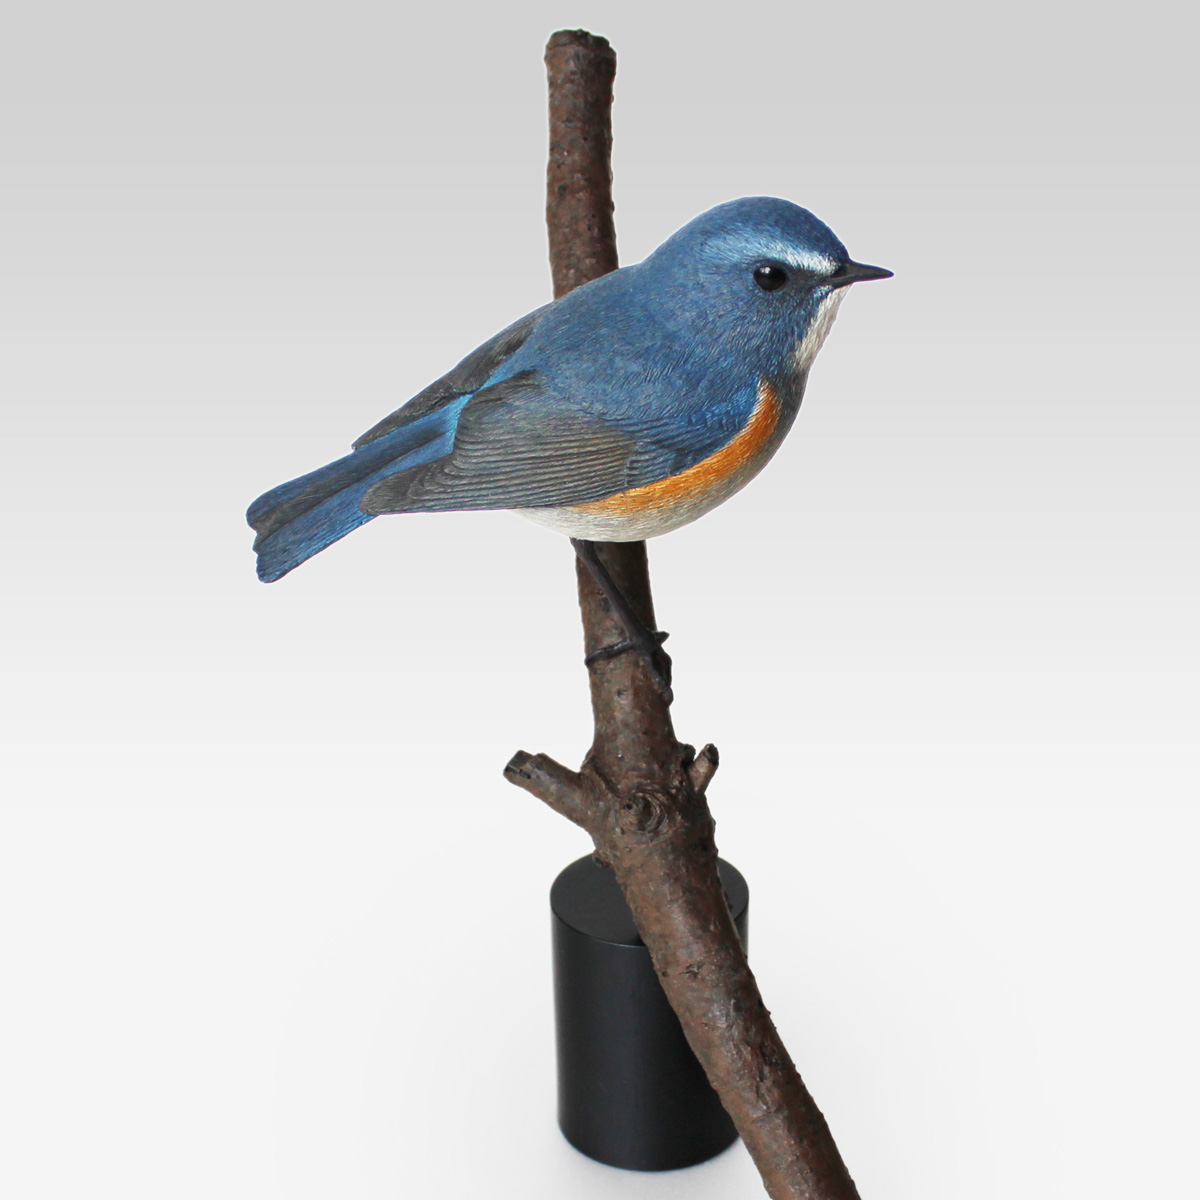 ルリビタキ Red-flanked Bluetail Tarsiger cyanurus